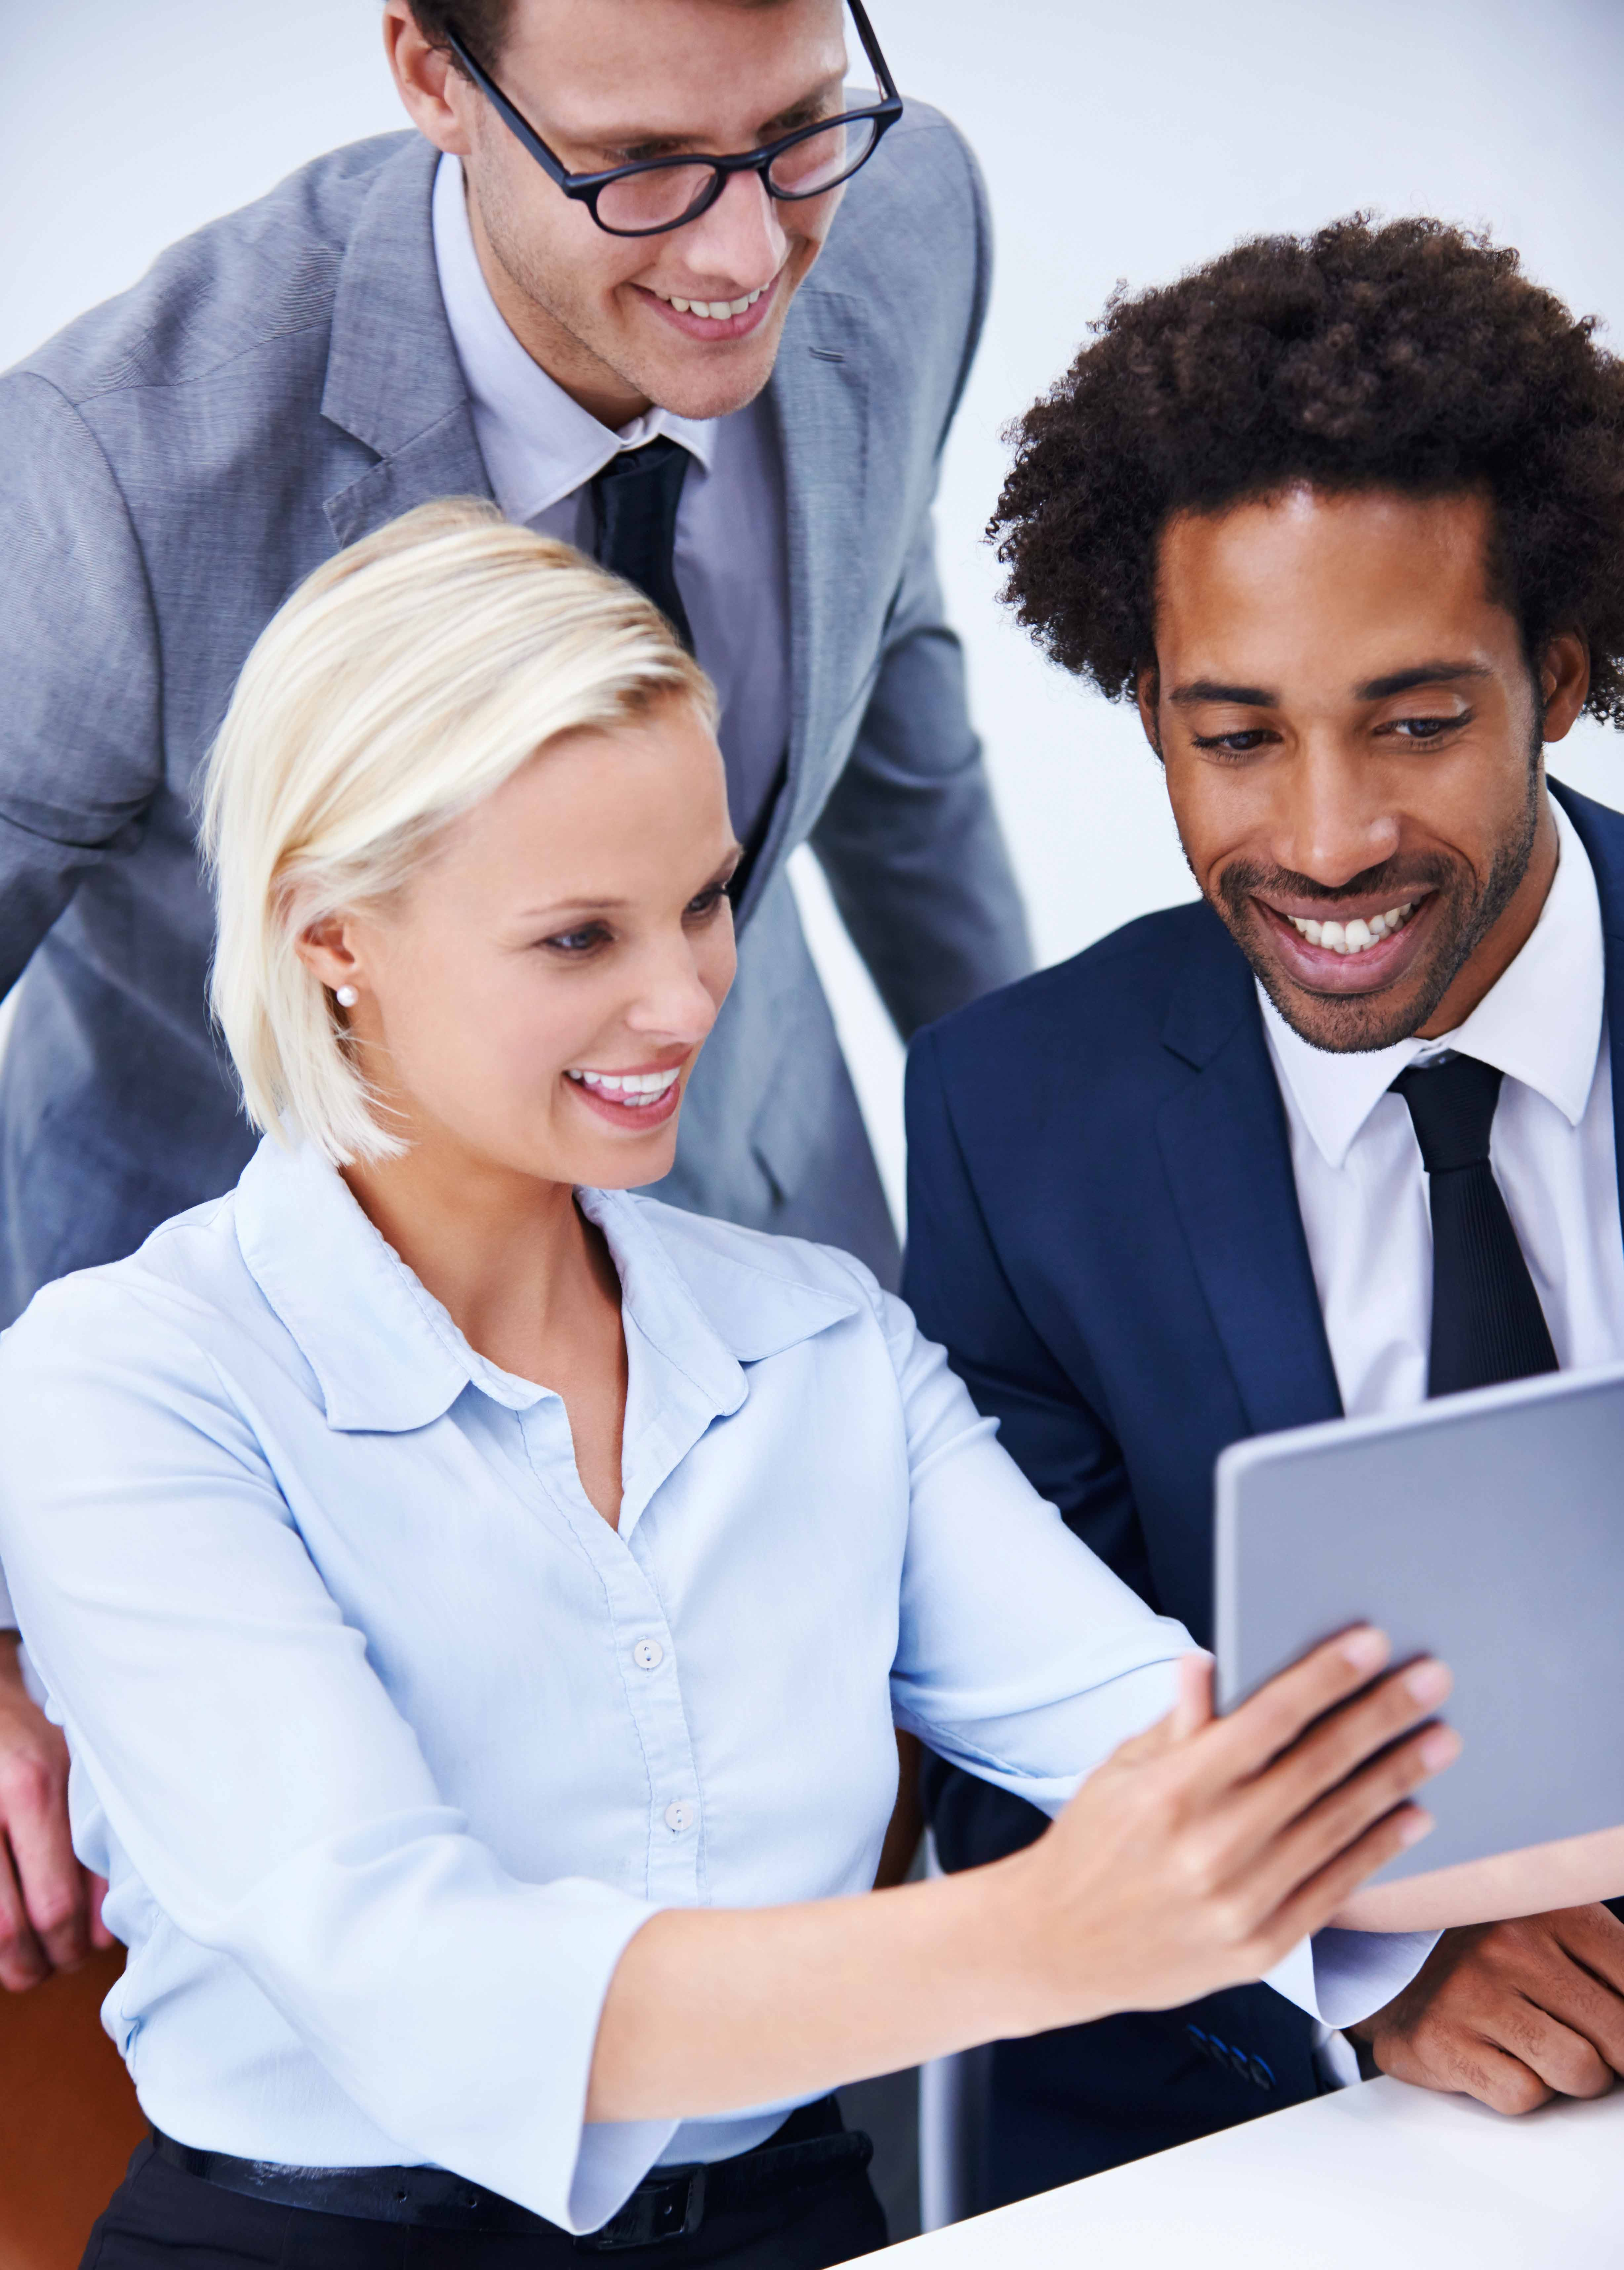 Skills That an ELearning Project Manager Should Possess